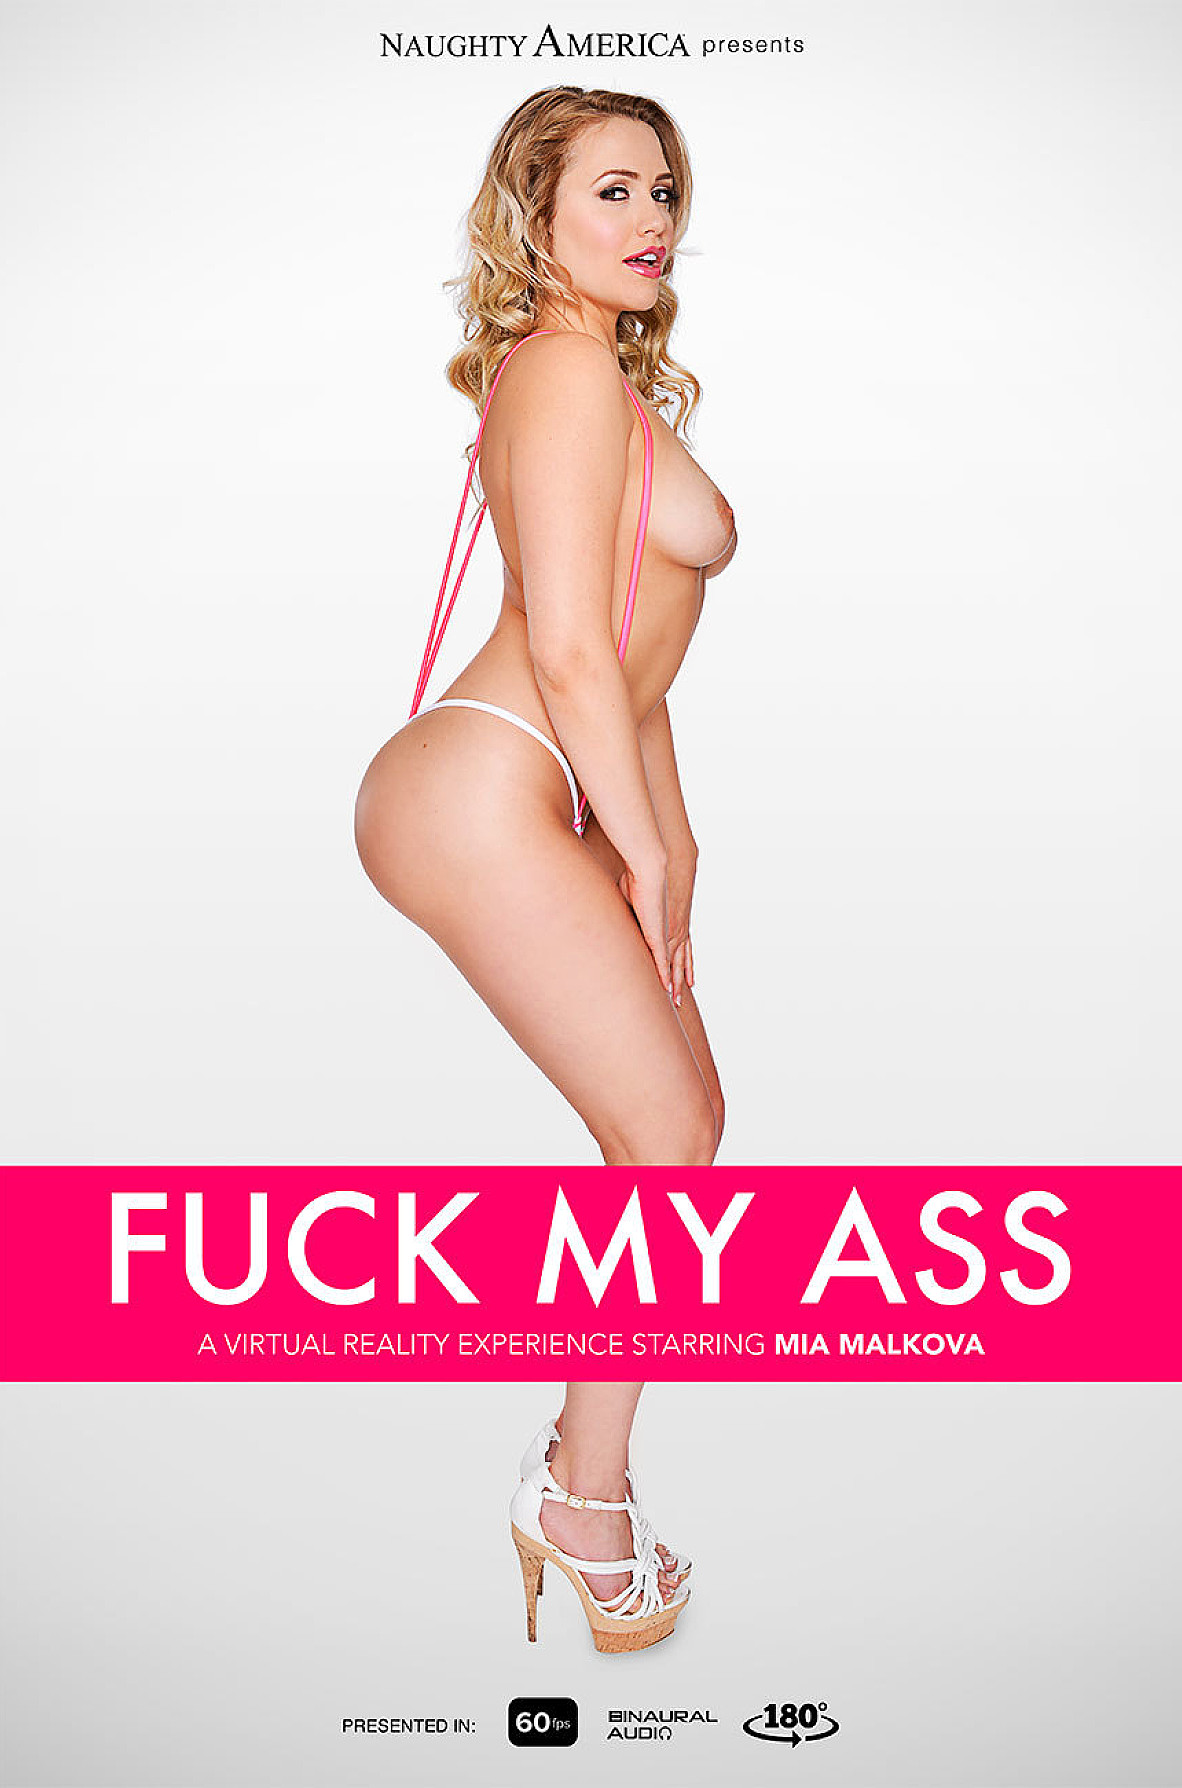 Watch Mia Malkova and Danny Mountain VR video in Naughty America